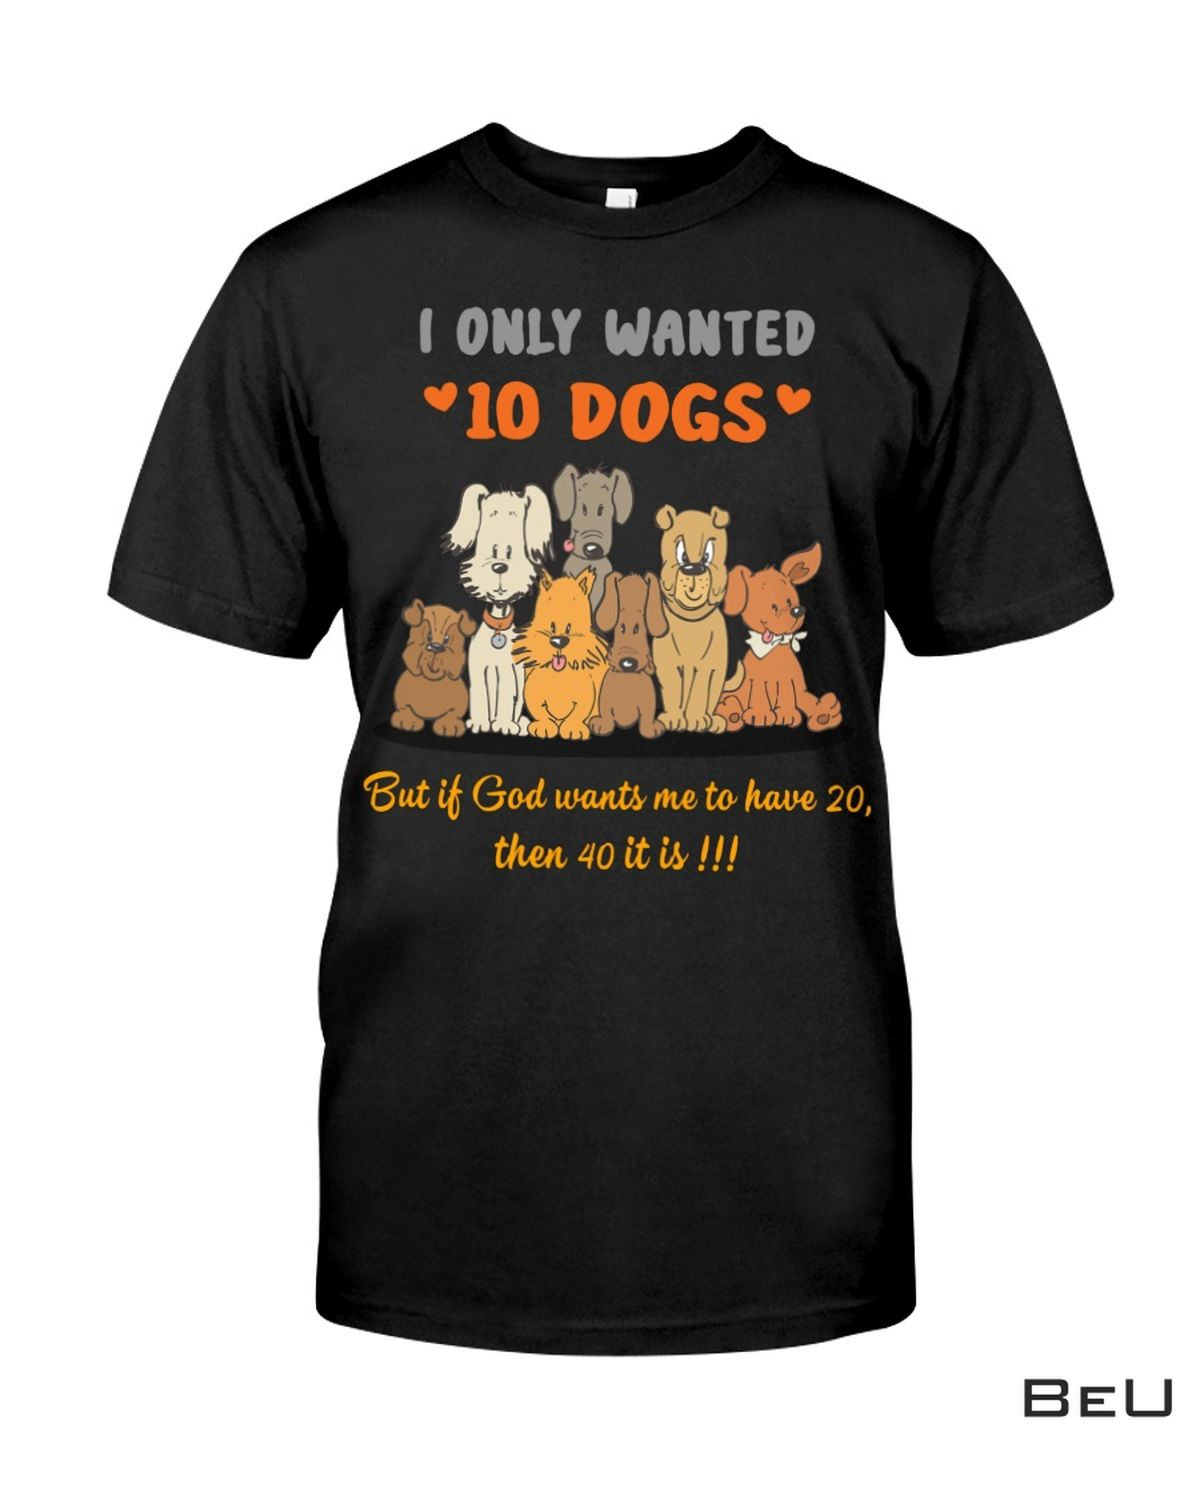 US Shop I Only Wanted 10 Dogs But If God Wants Me To Have 20 Shirt, hoodie, tank top